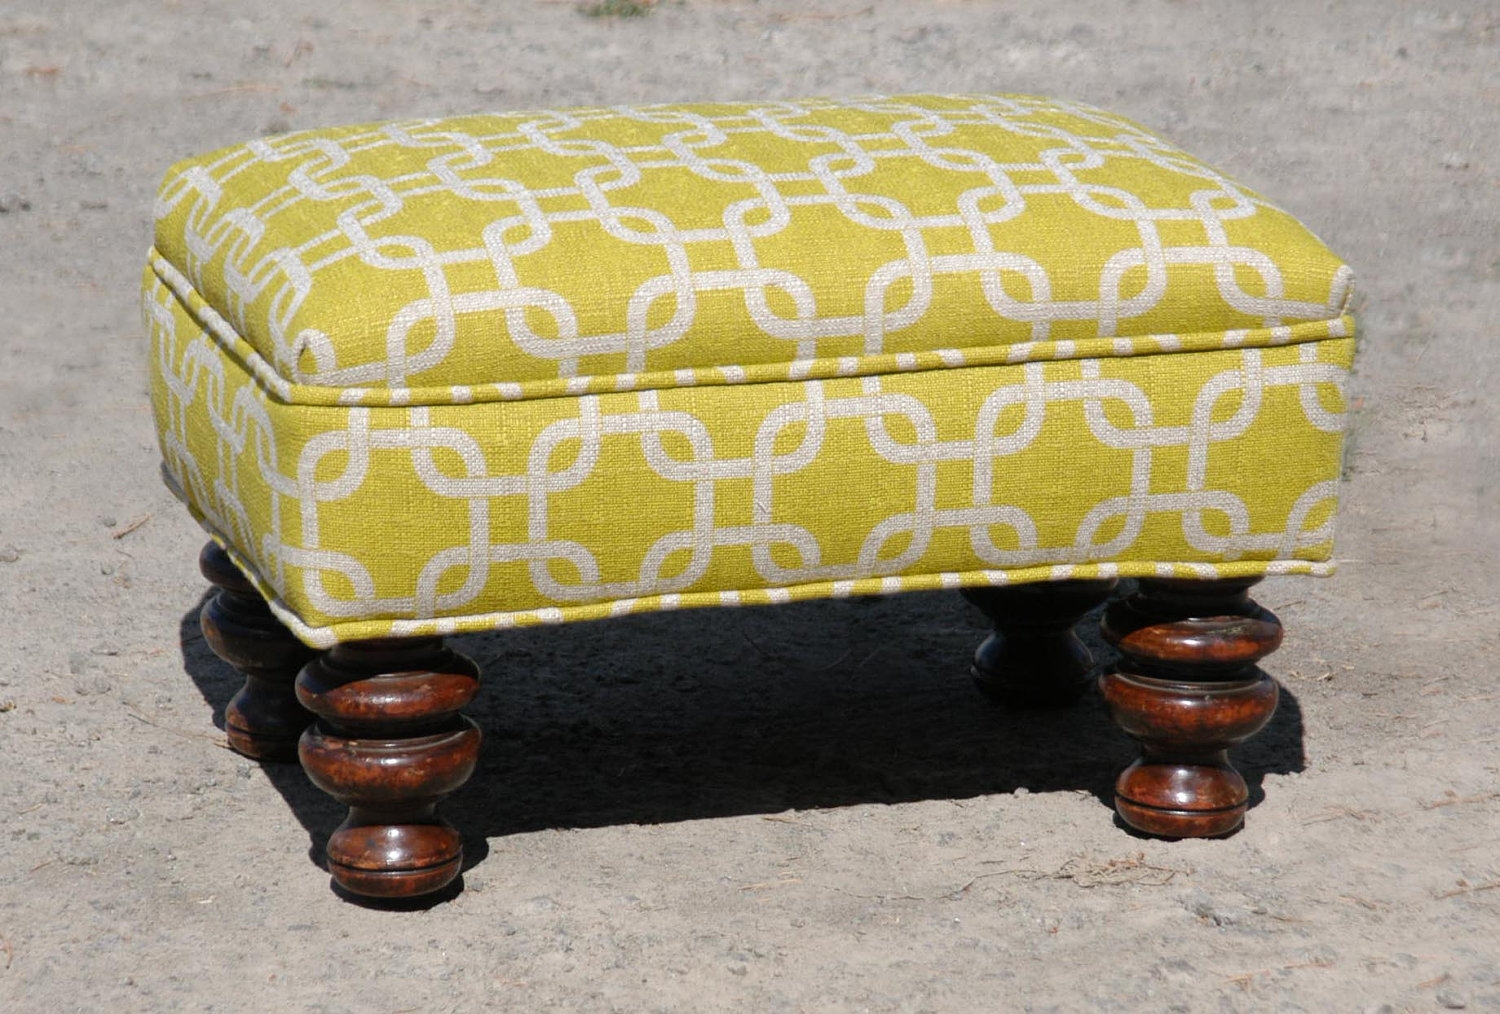 Vintage Upholstered Footstool Regarding Upholstered Footstools (Image 15 of 15)